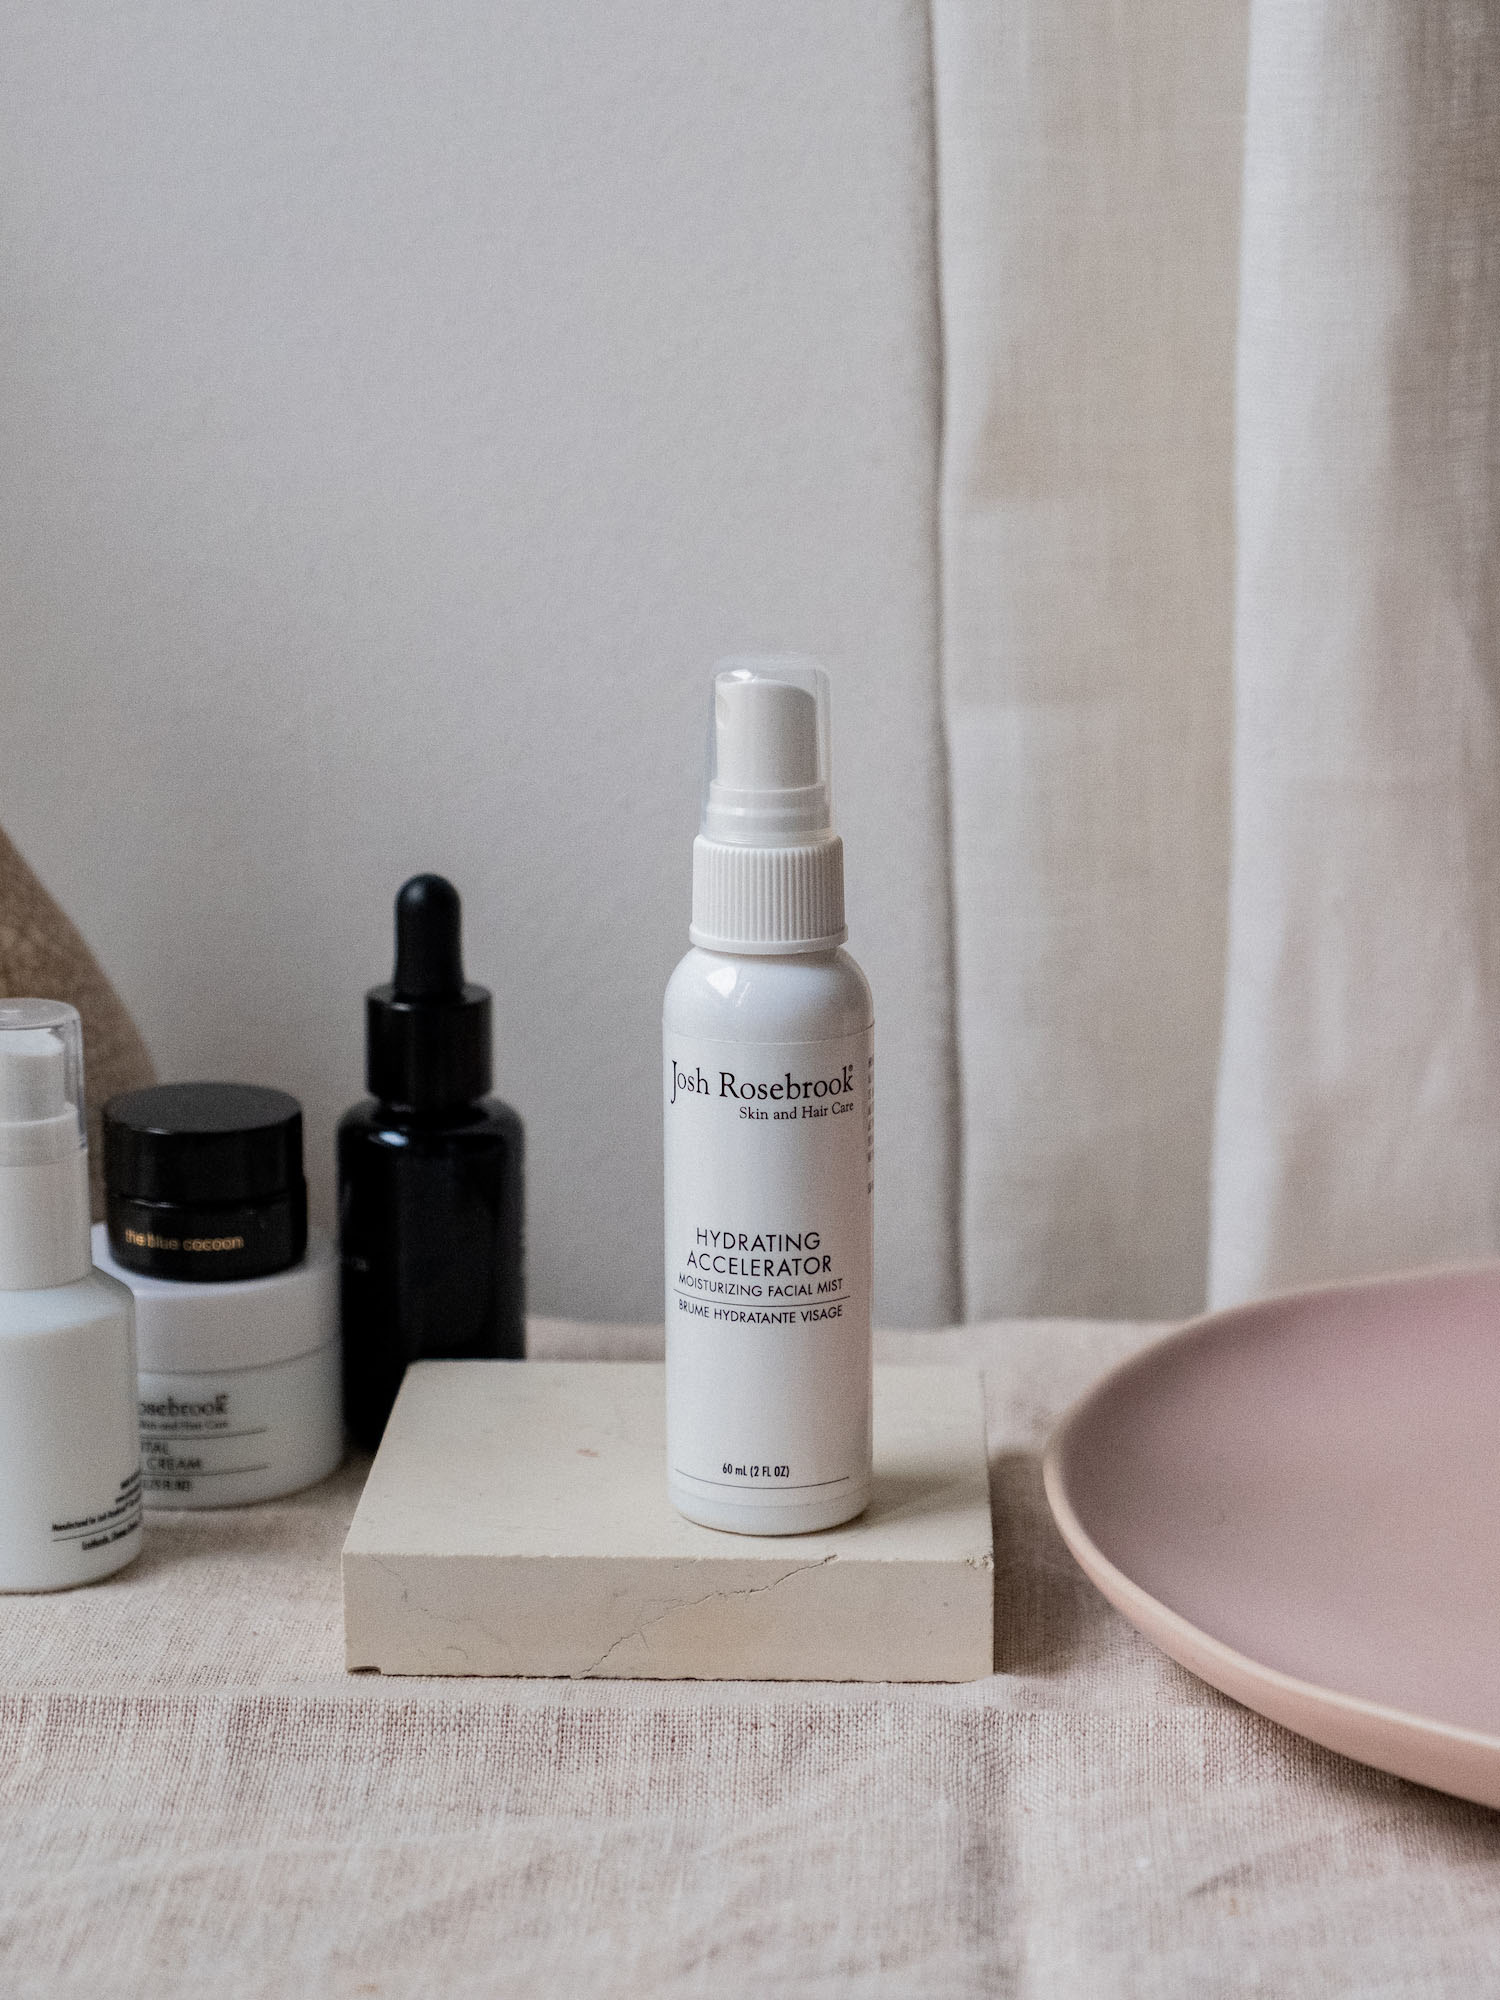 Beautyblog Bare Minds Review Josh Rosebrook Hydrating Accelerator